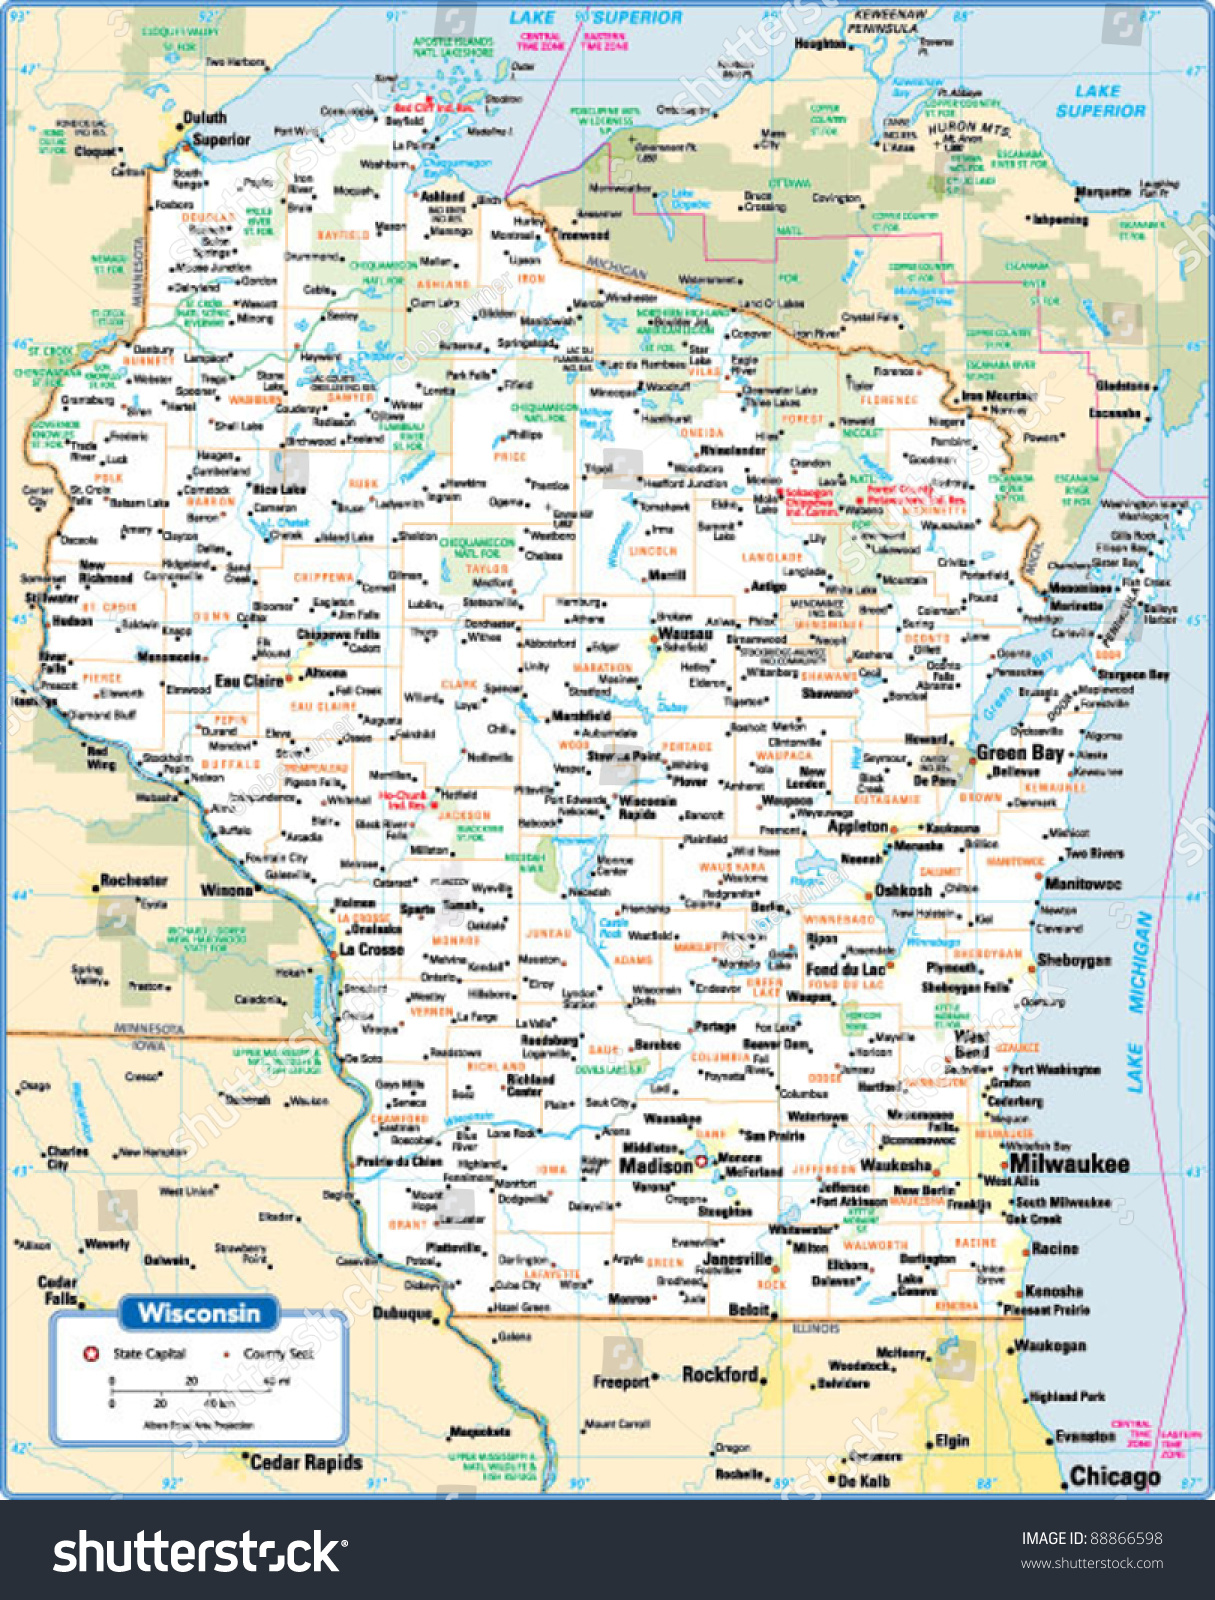 Wisconsin State Map Stock Vector Shutterstock - Wisconsin state map